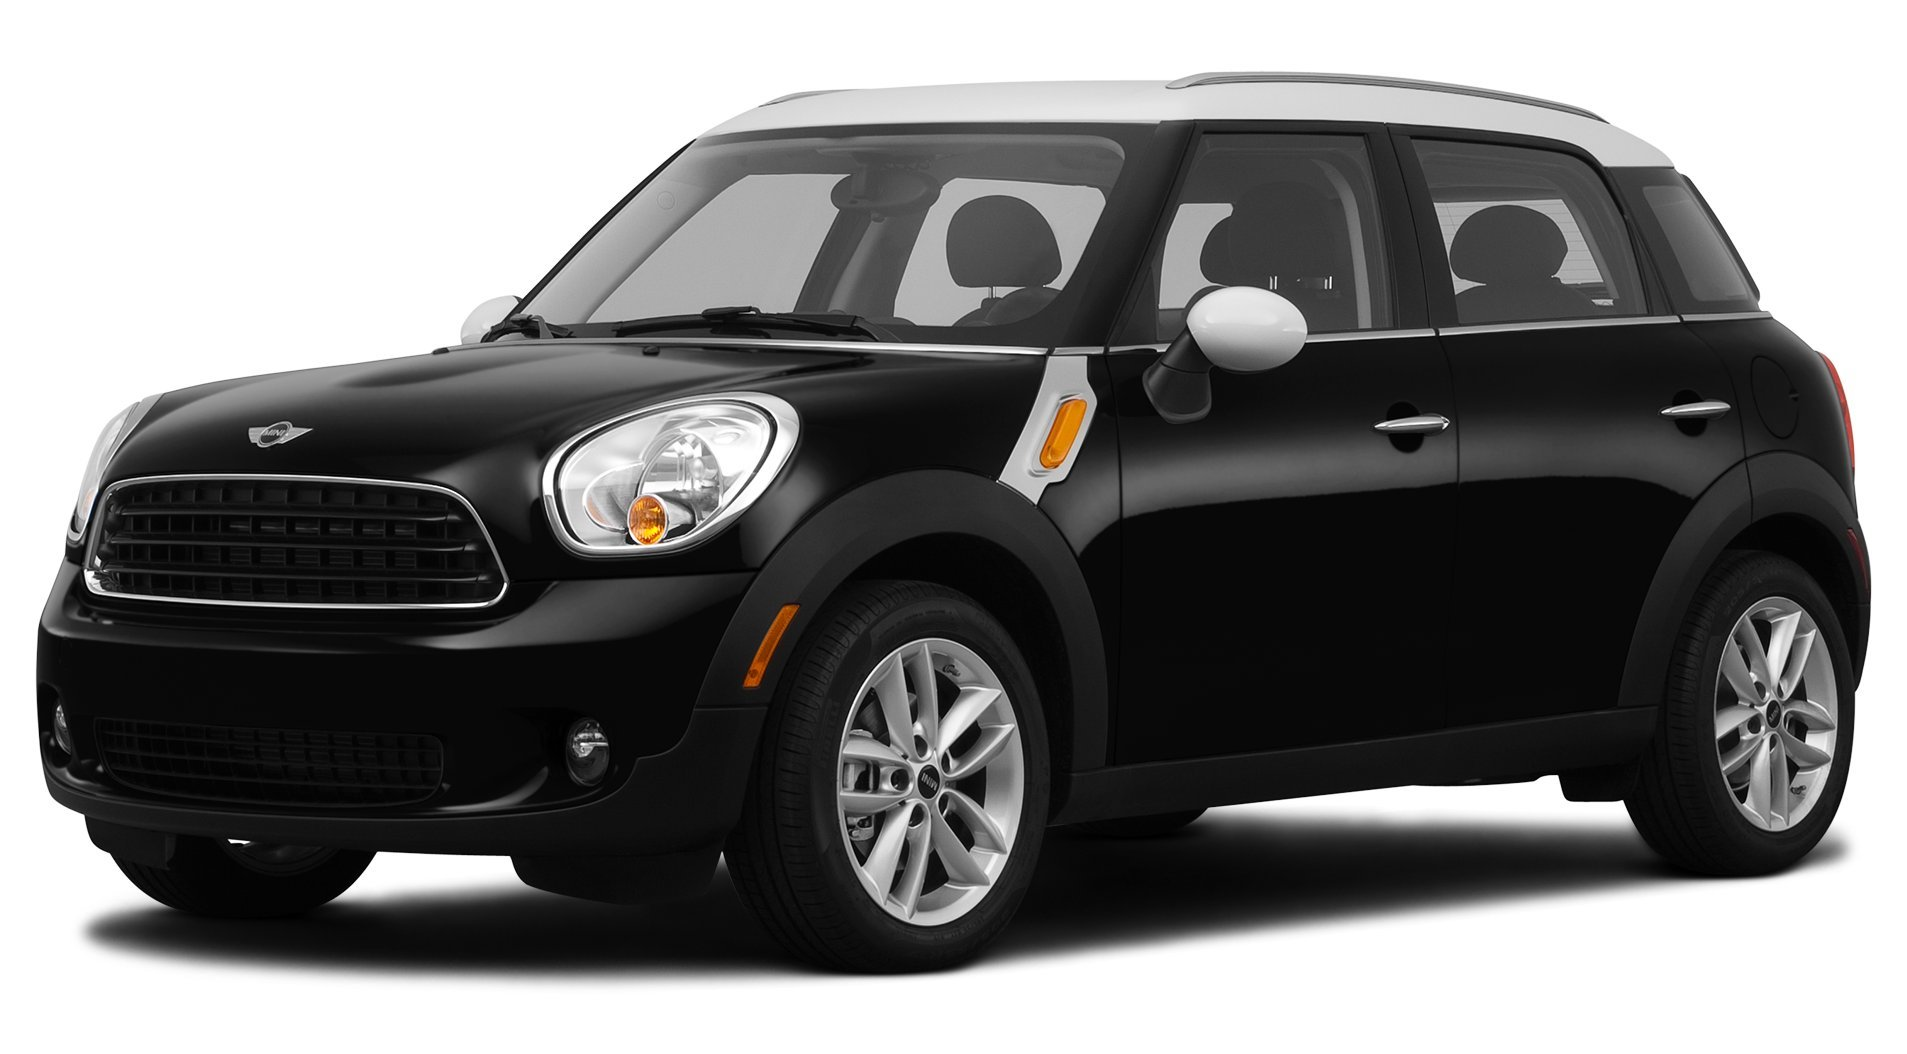 2011 mini cooper countryman reviews images and specs vehicles. Black Bedroom Furniture Sets. Home Design Ideas